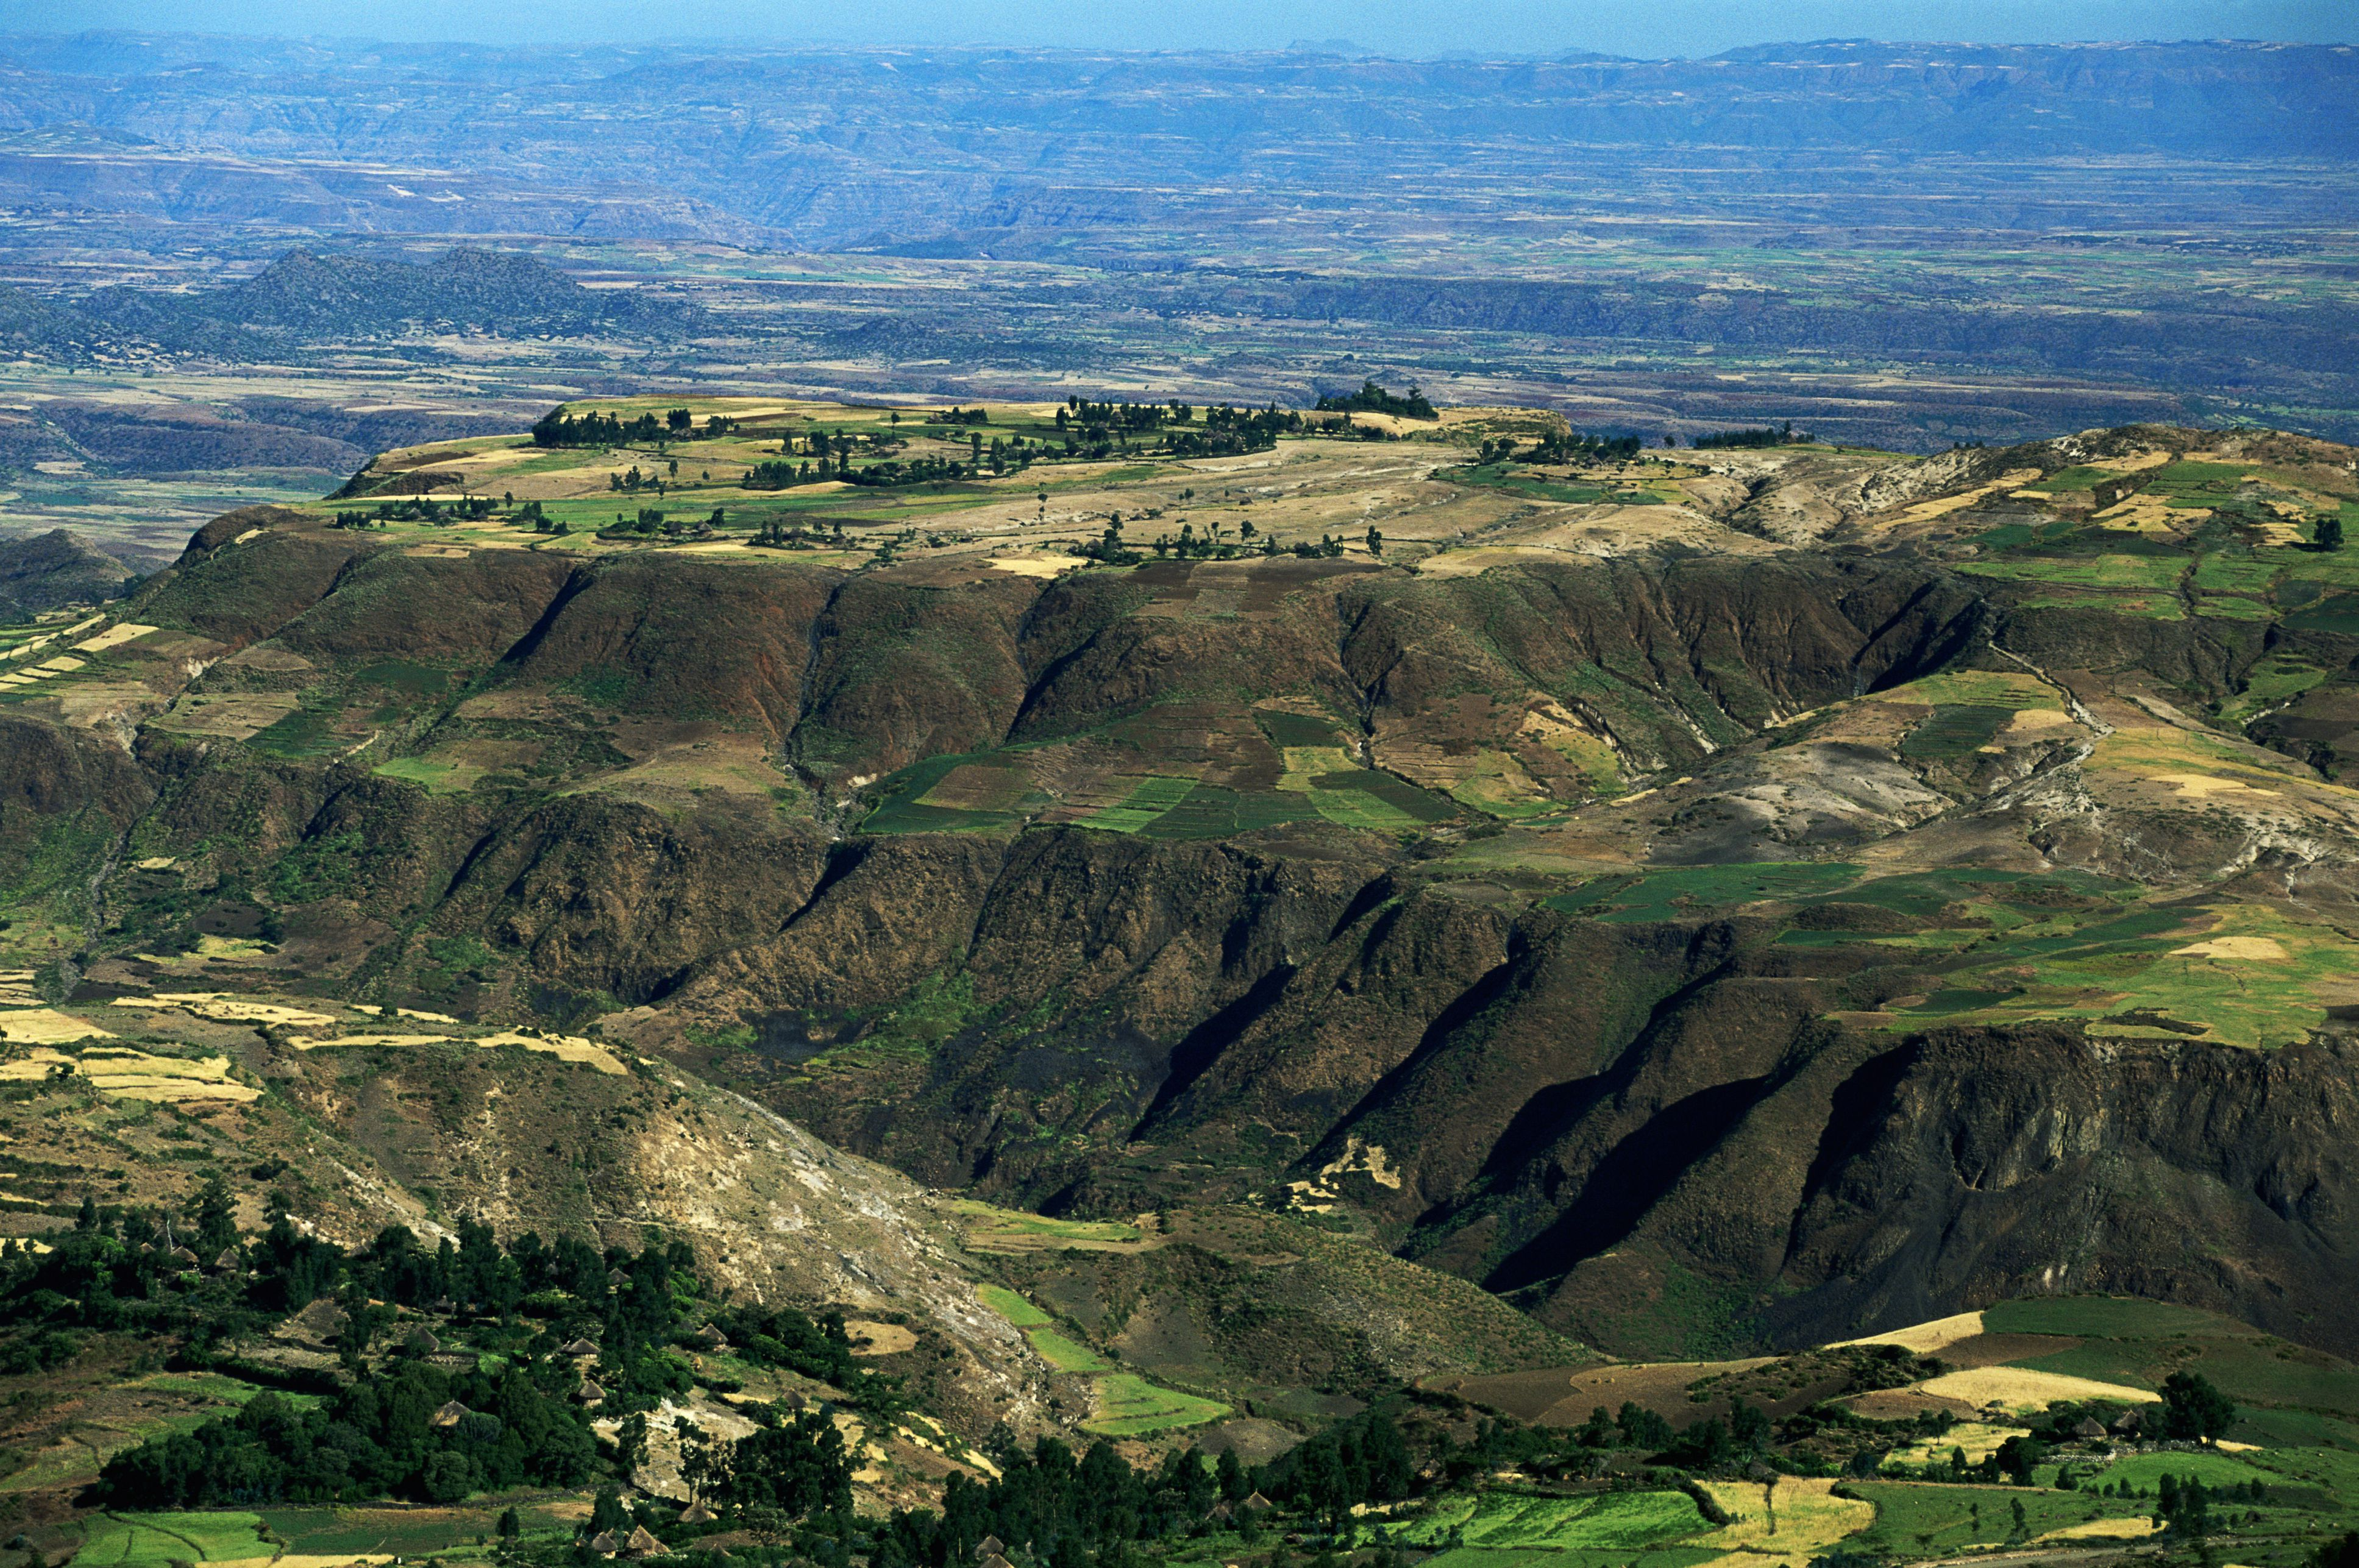 east african rift valley East african rift valley, lesson for kids, the east african rift valley is an important area for scientists to study as it offers information about how the.